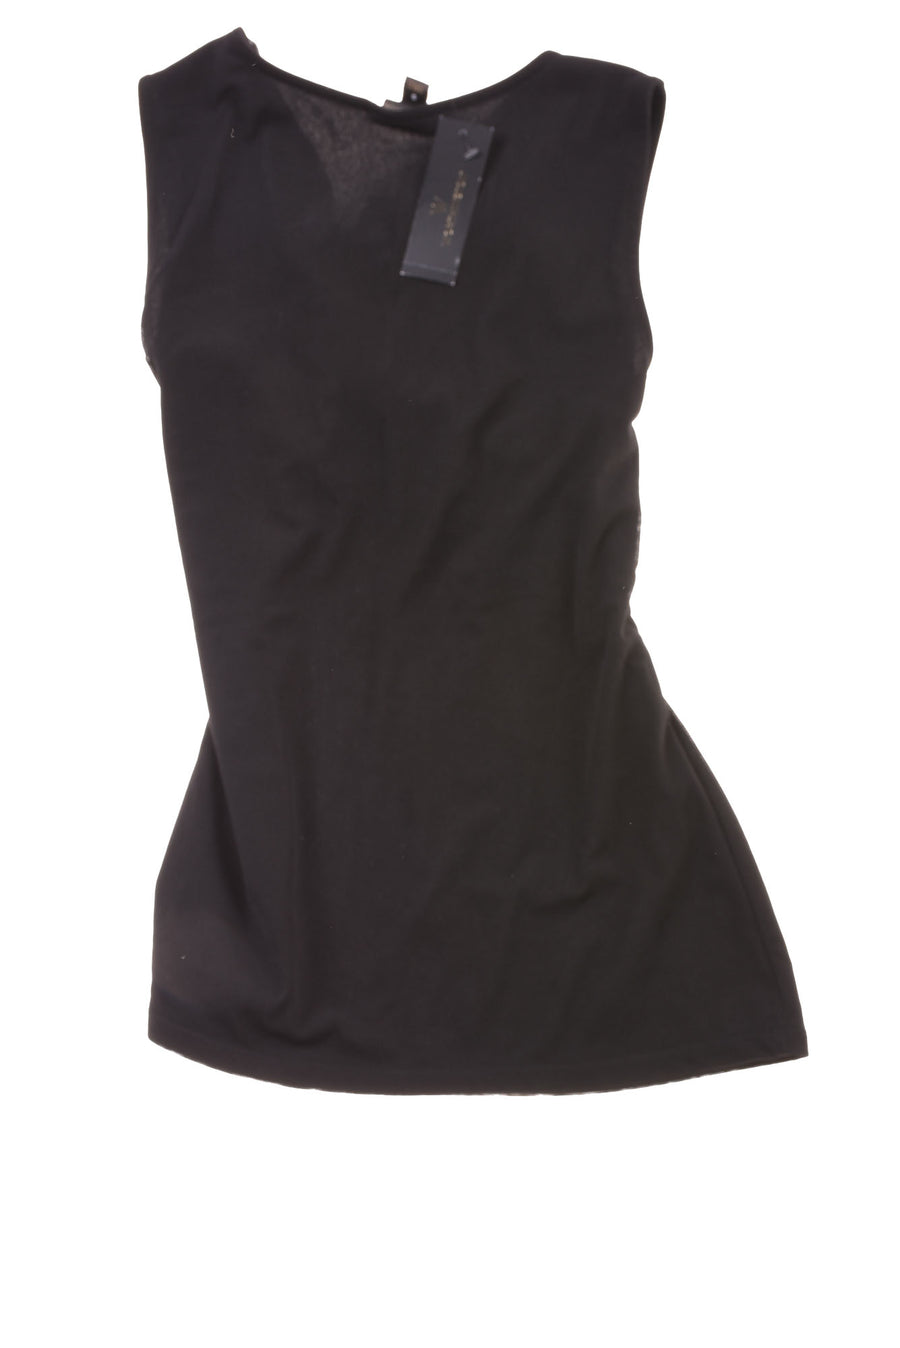 NEW Worthington Women's Top Small Black